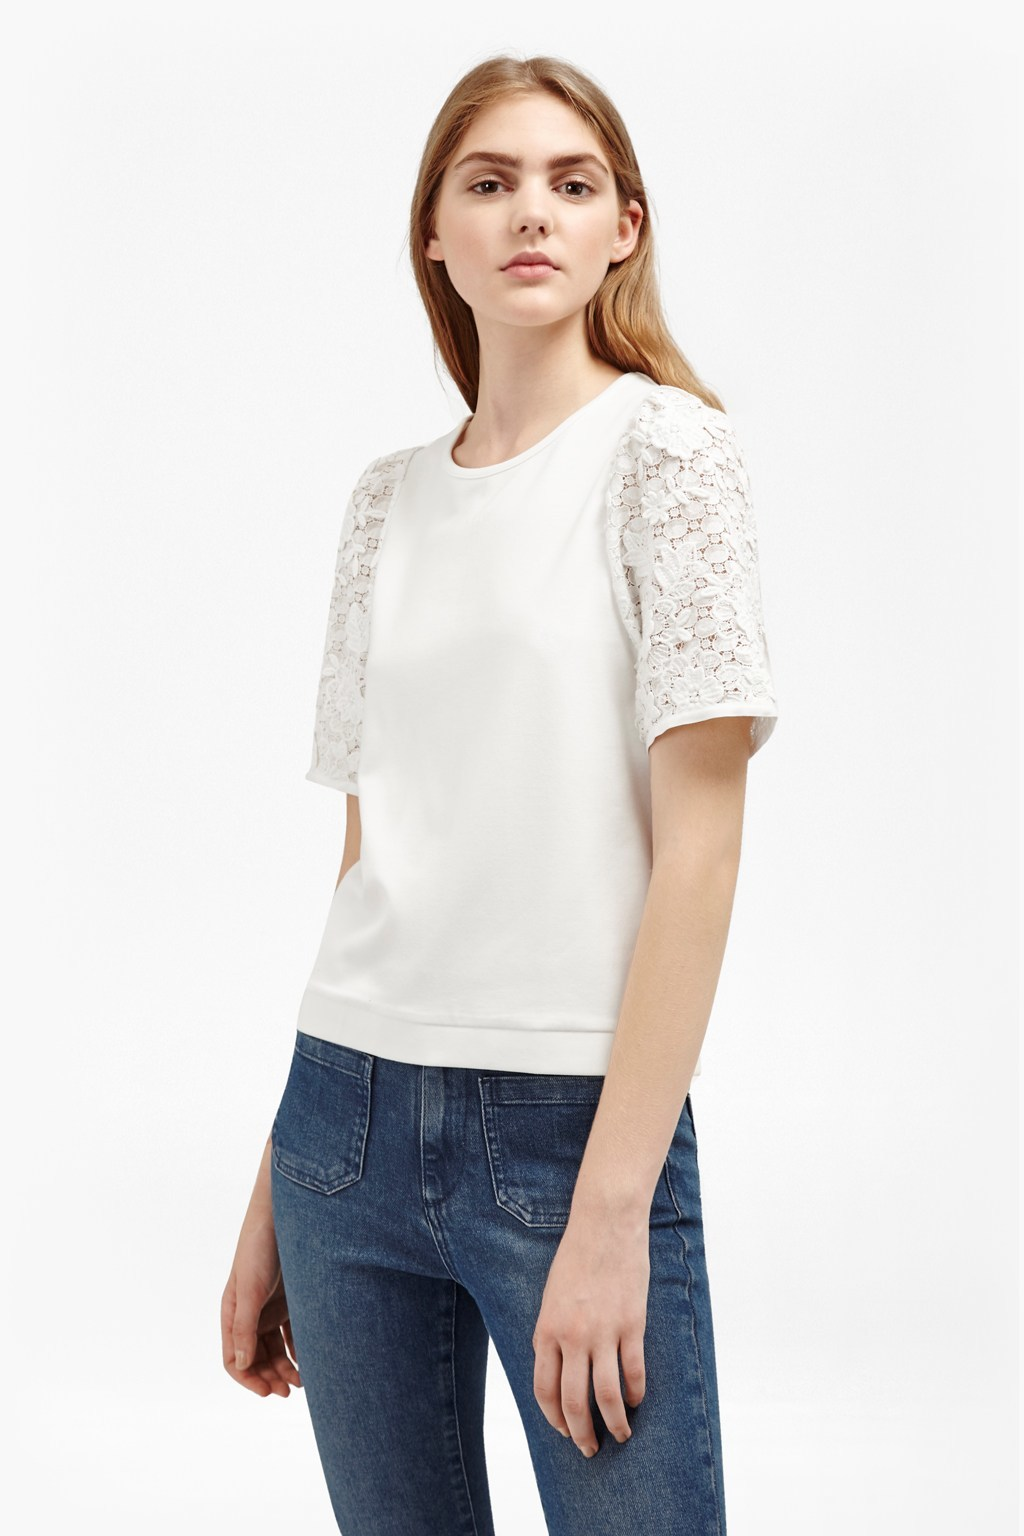 Anna Lace Sleeve Top Winter White - pattern: plain; predominant colour: white; occasions: casual; length: standard; style: top; fibres: viscose/rayon - 100%; fit: body skimming; neckline: crew; sleeve length: short sleeve; sleeve style: standard; pattern type: fabric; texture group: jersey - stretchy/drapey; embellishment: lace; season: a/w 2016; wardrobe: highlight